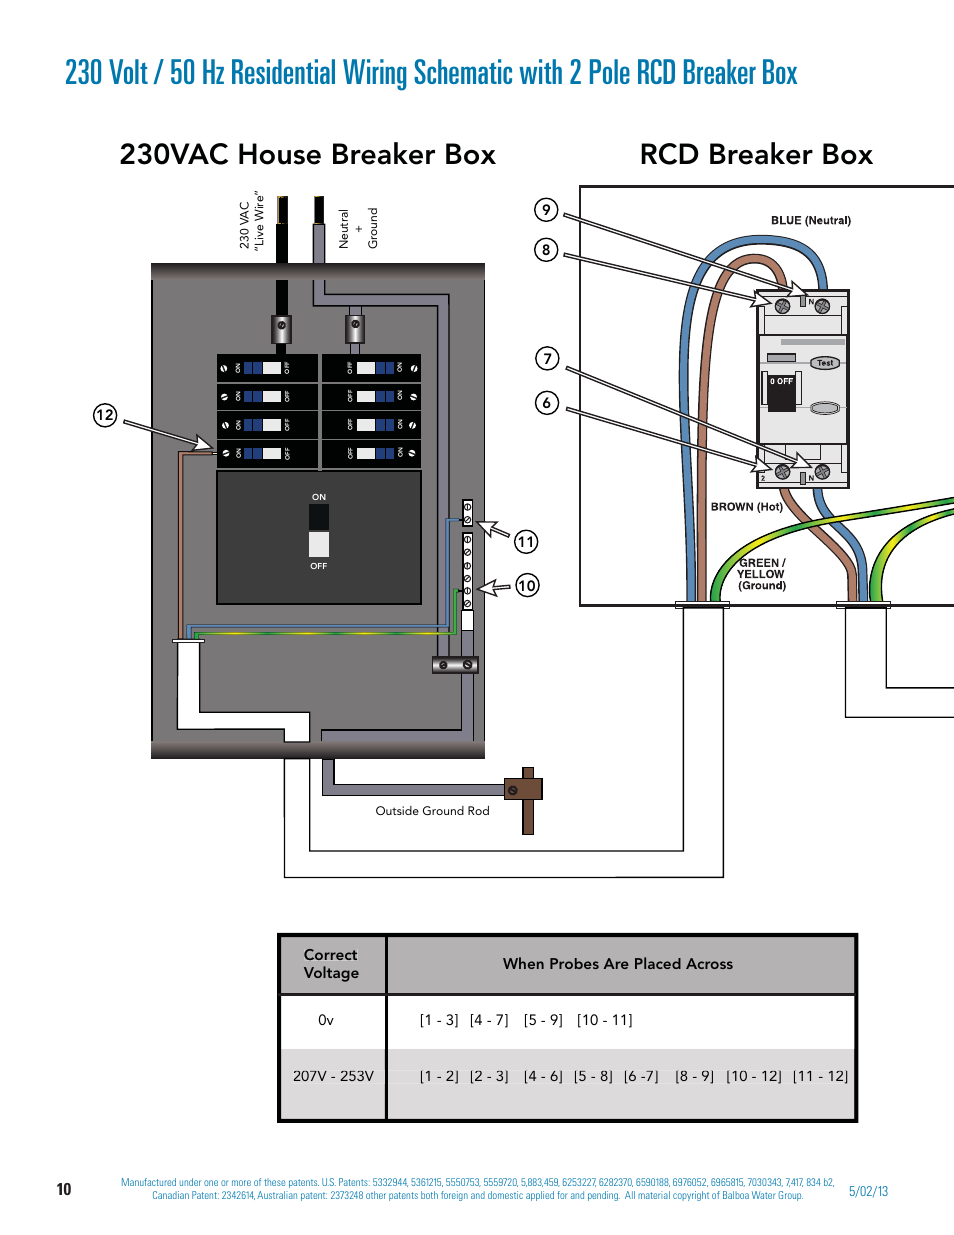 230vac House Breaker Box Rcd Balboa Water Group Bp Wiring Diagram 50hz User Manual Page 10 84